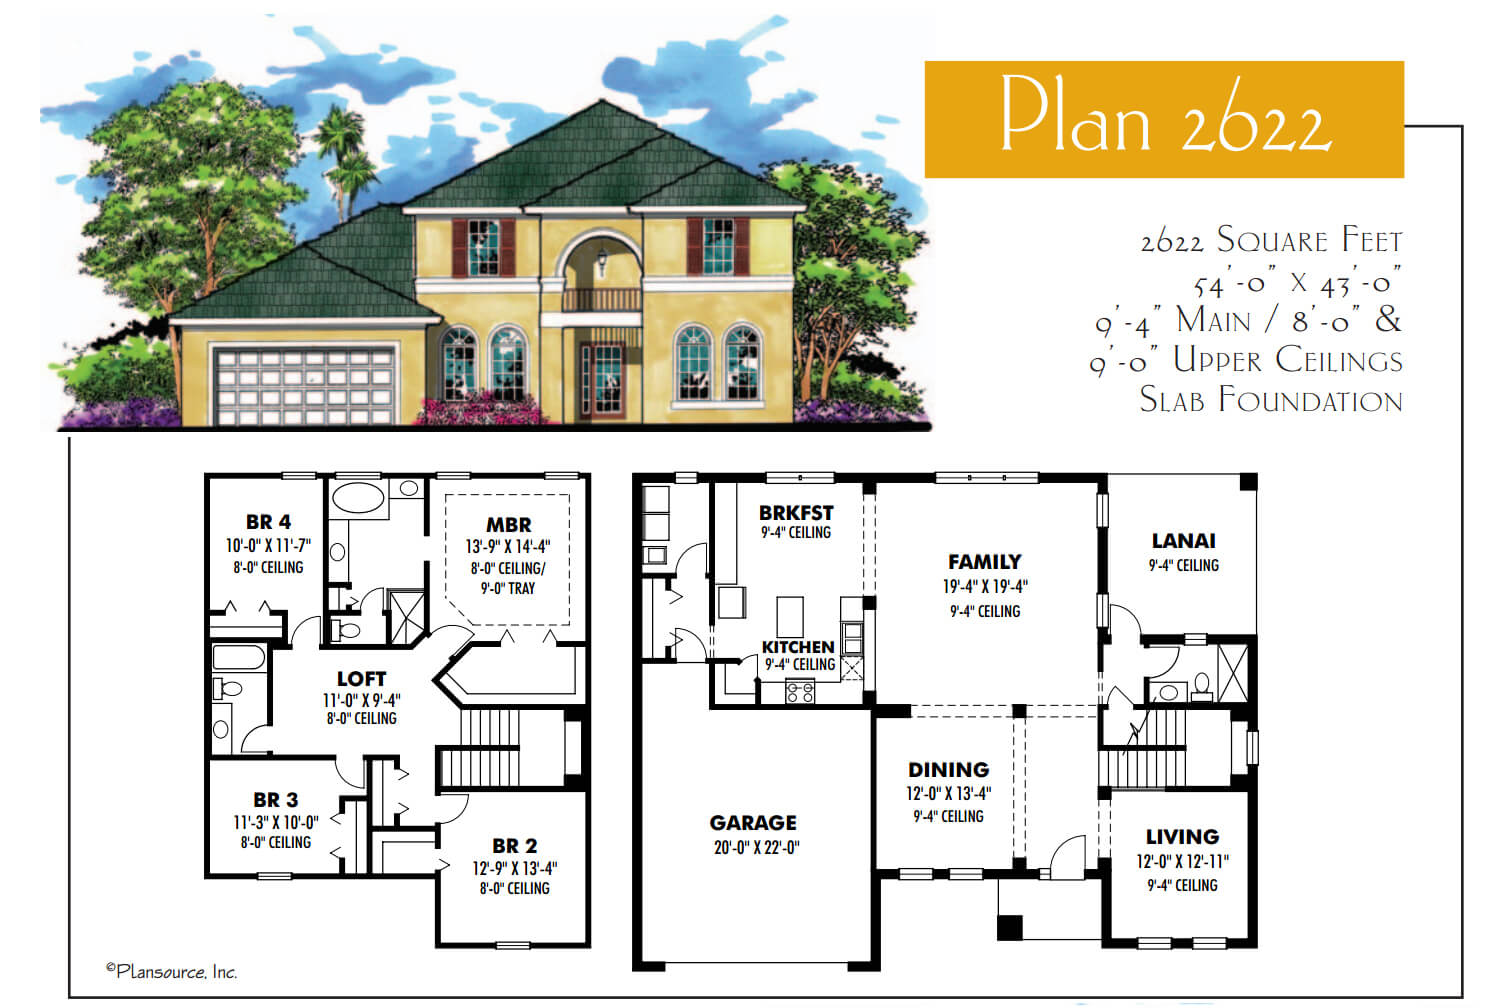 Floor Plans,2,501 SQ FT TO 3,000 SQ FT,1064